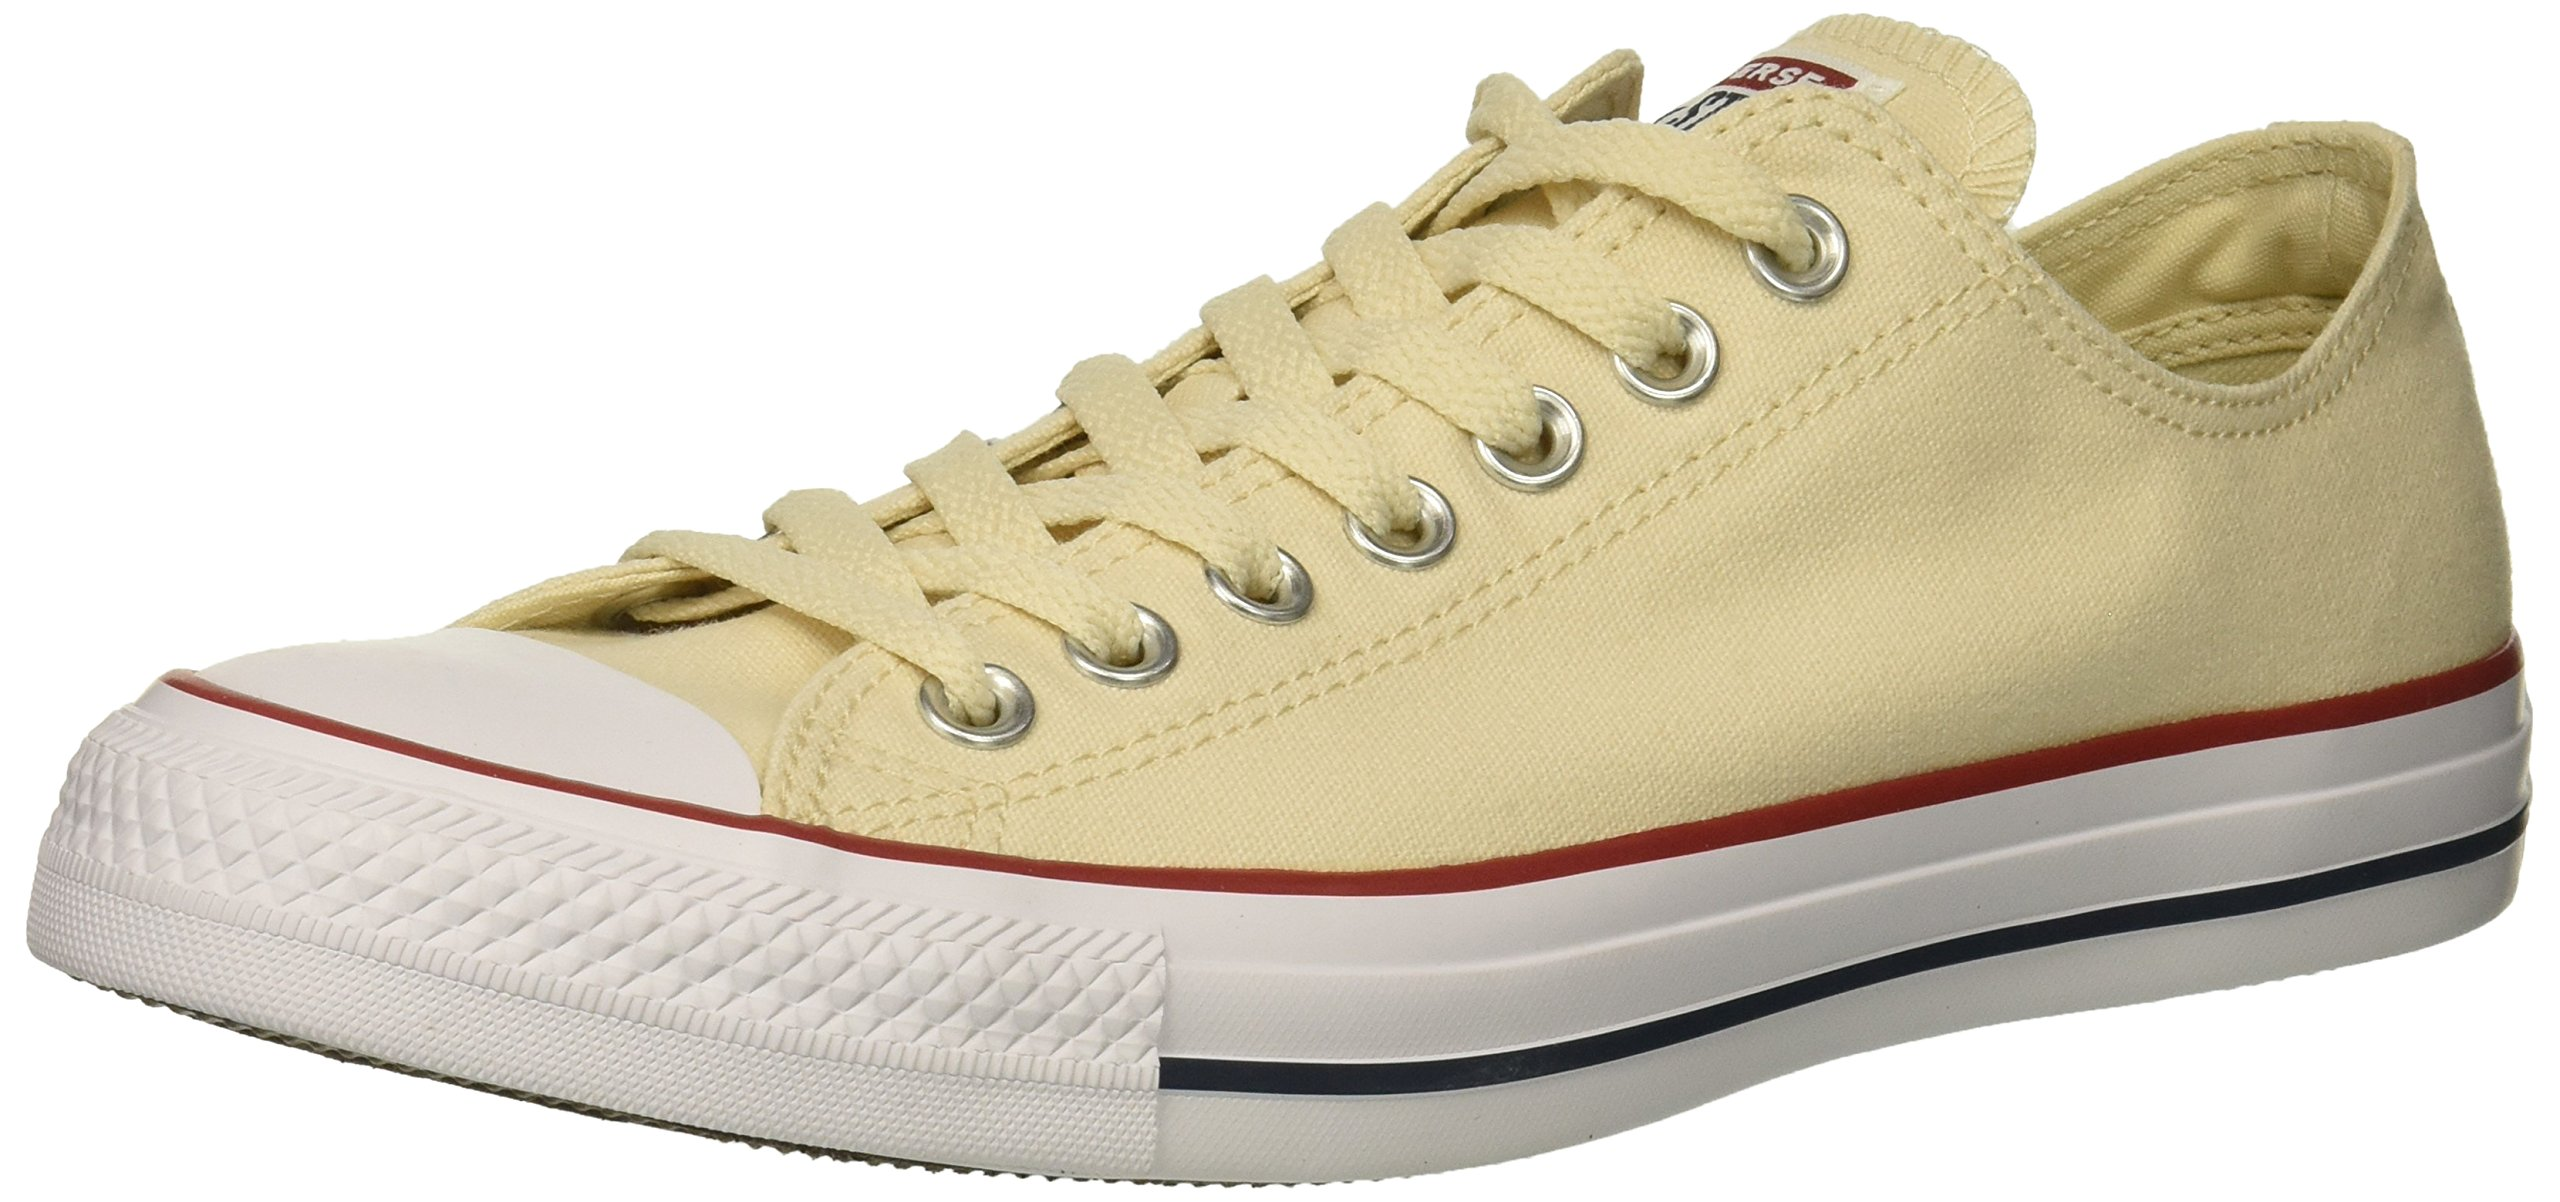 Converse Chuck Taylor All Star Low Top Sneaker, Natural Ivory, 11 M US